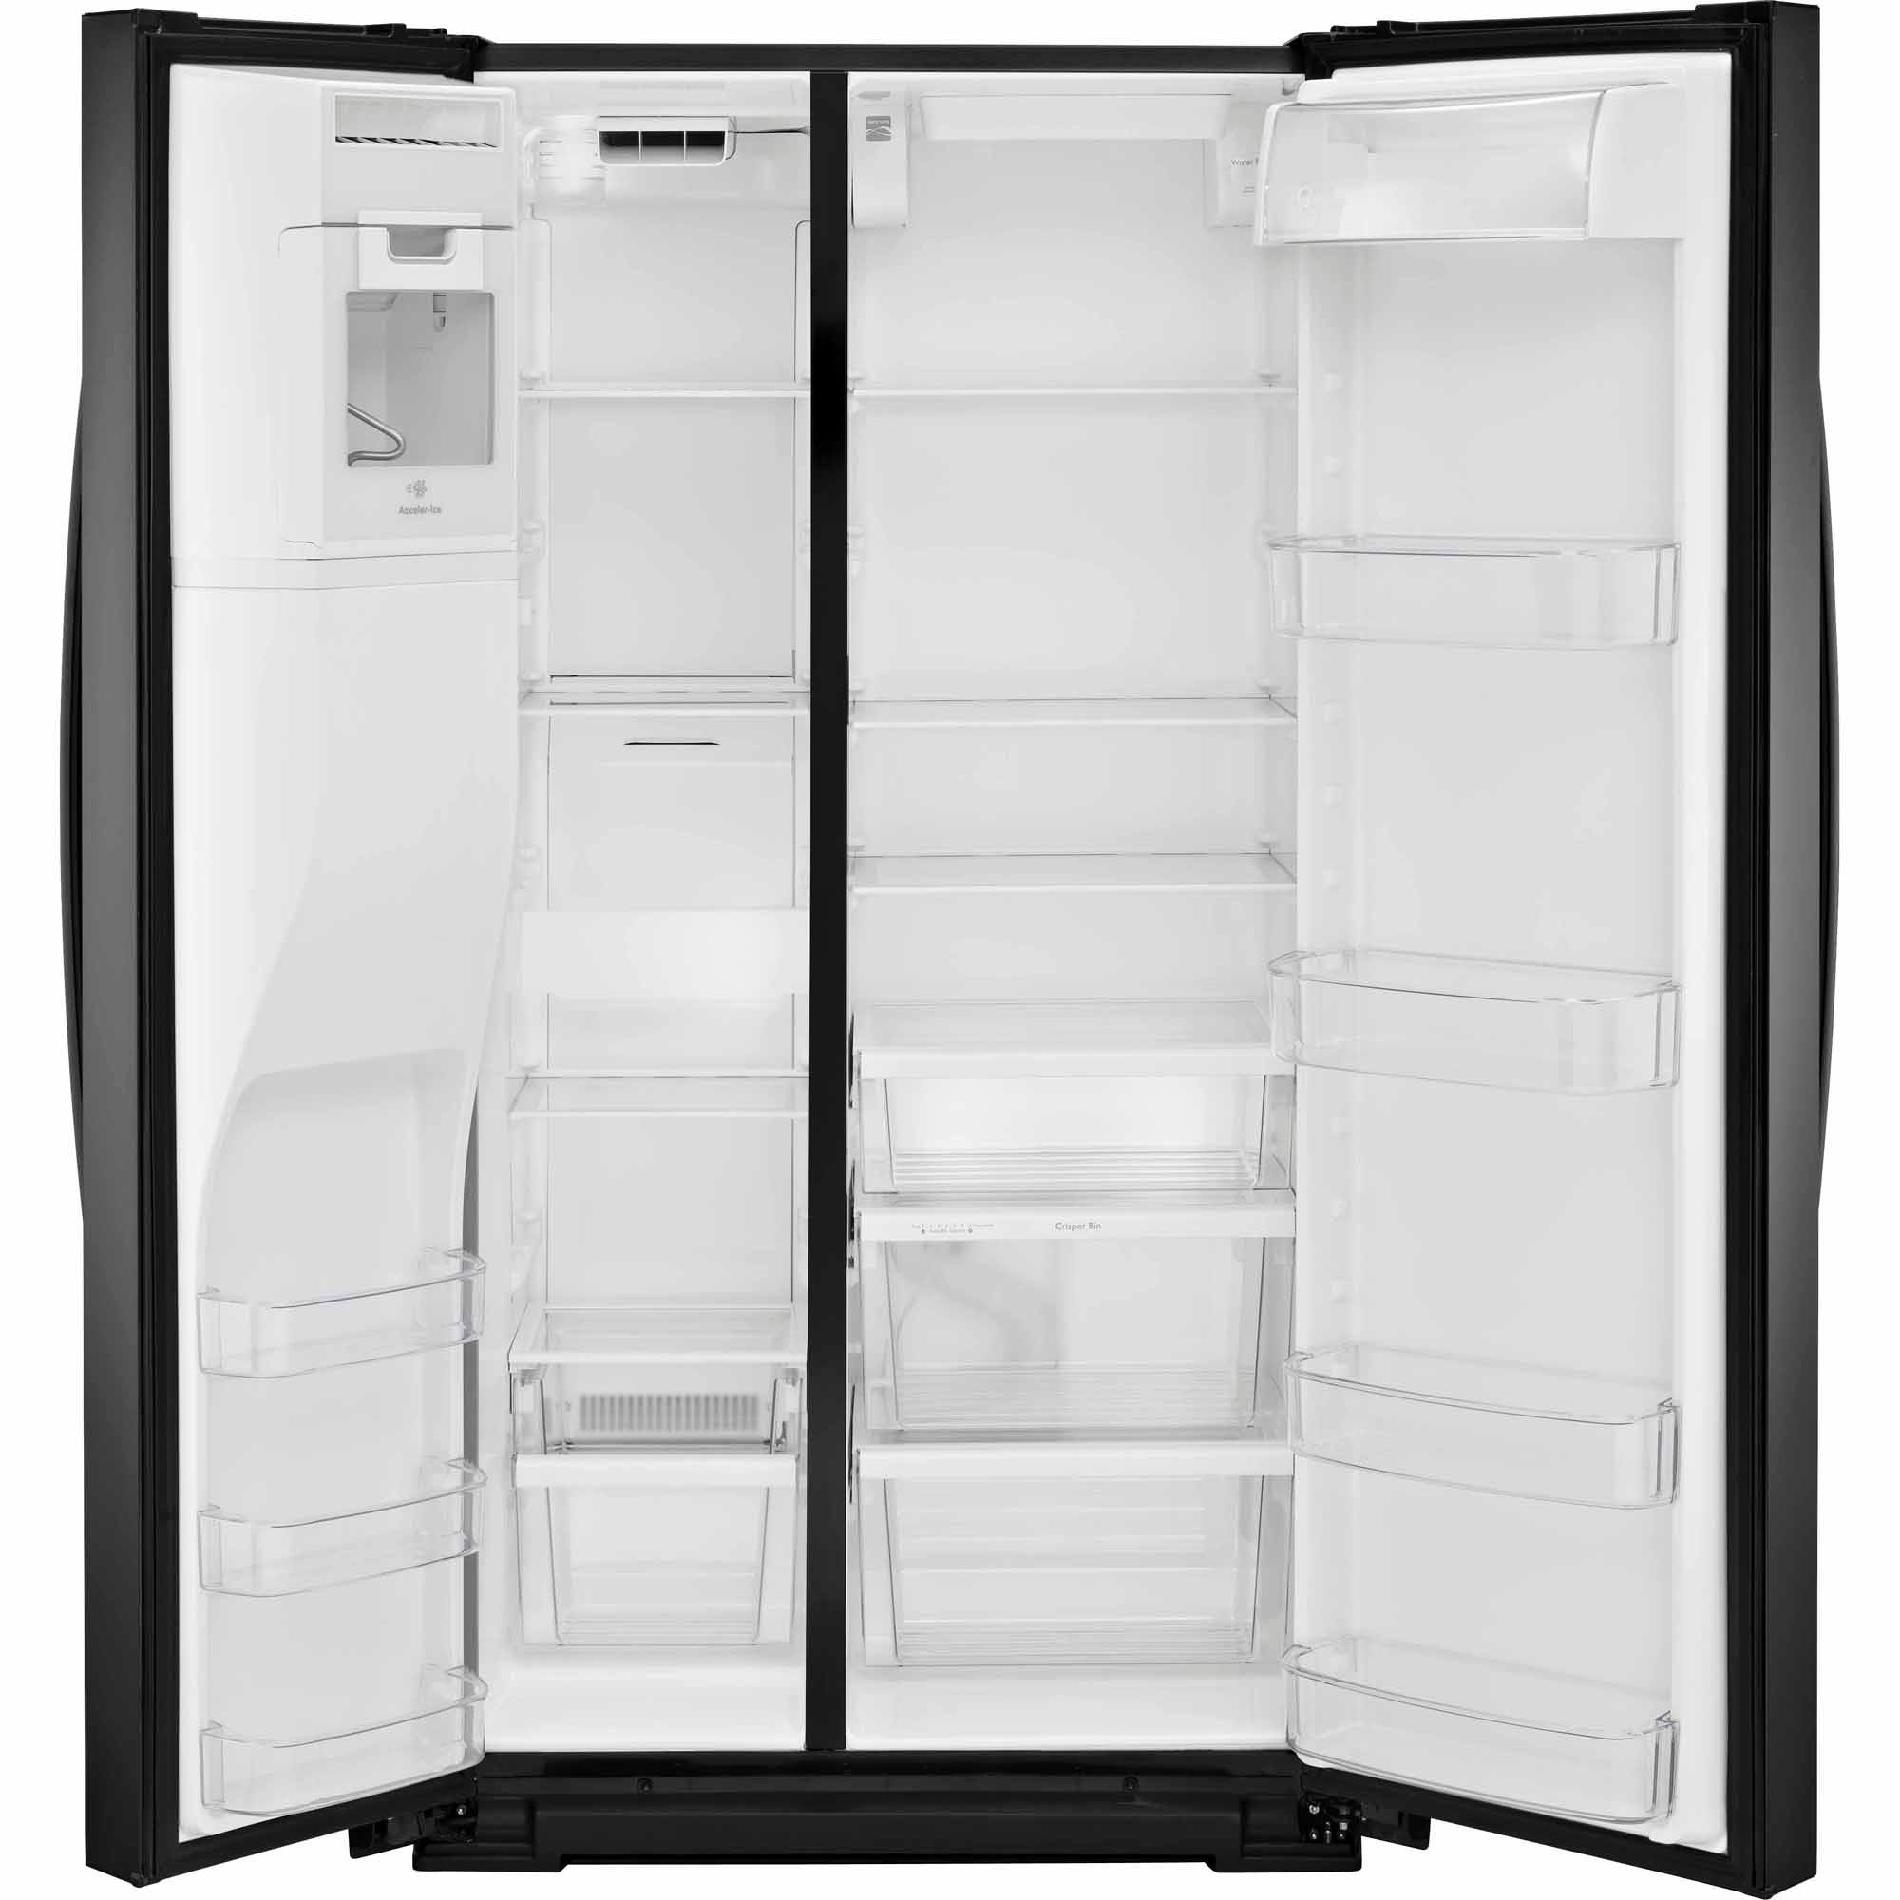 Kenmore 51789 21 cu. ft. Counter-Depth Side-by-Side Refrigerator - Black